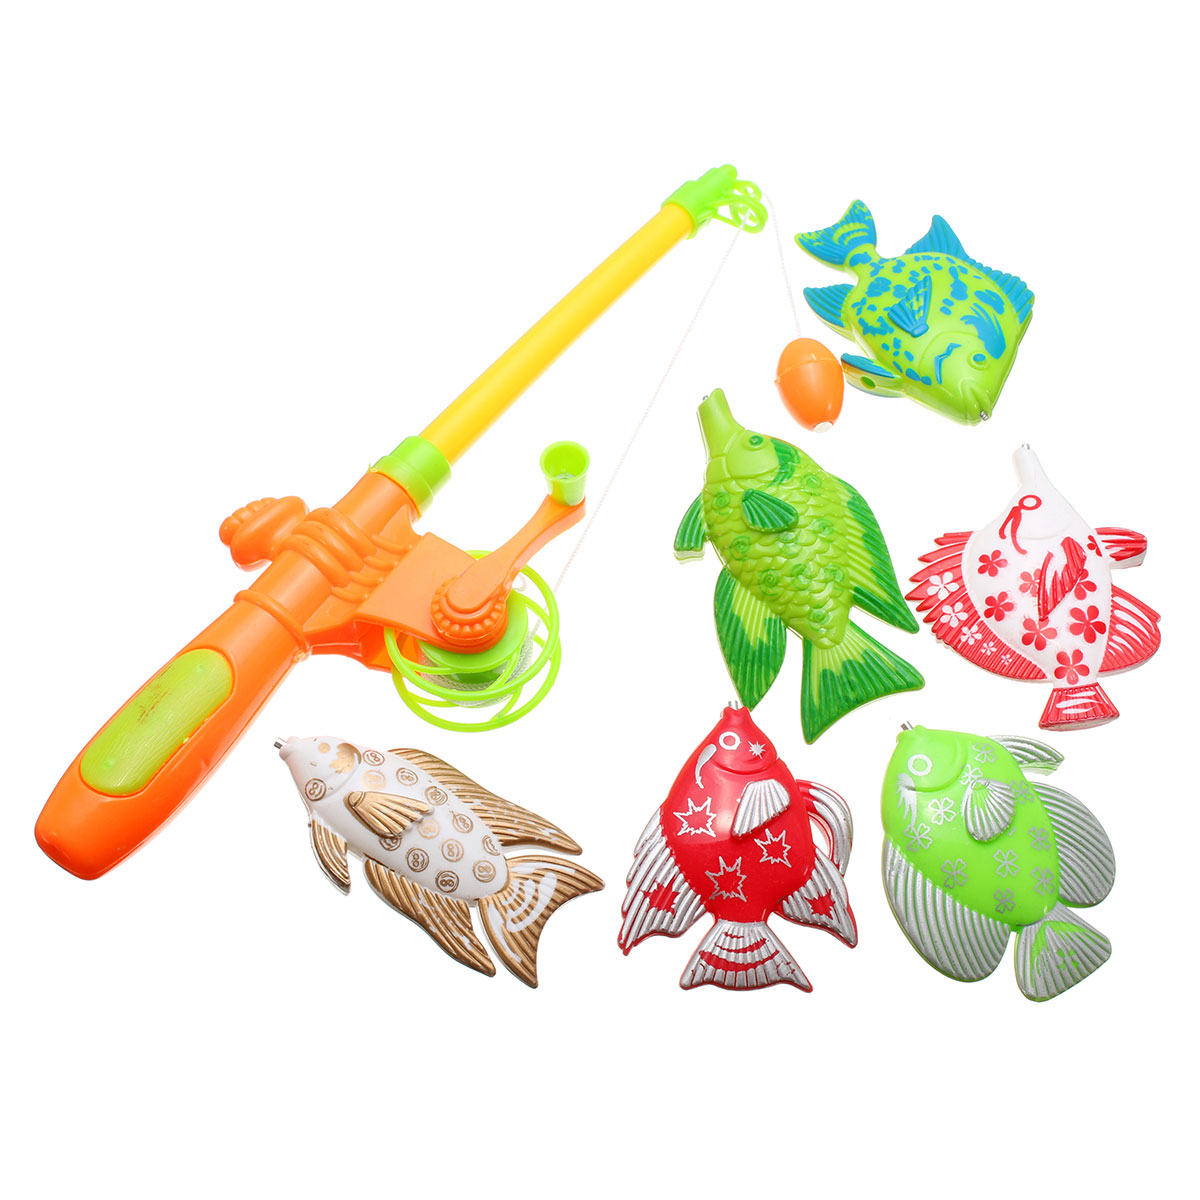 Education Magnetic Fishing Toy With 6 Fish And A Fishing Rod